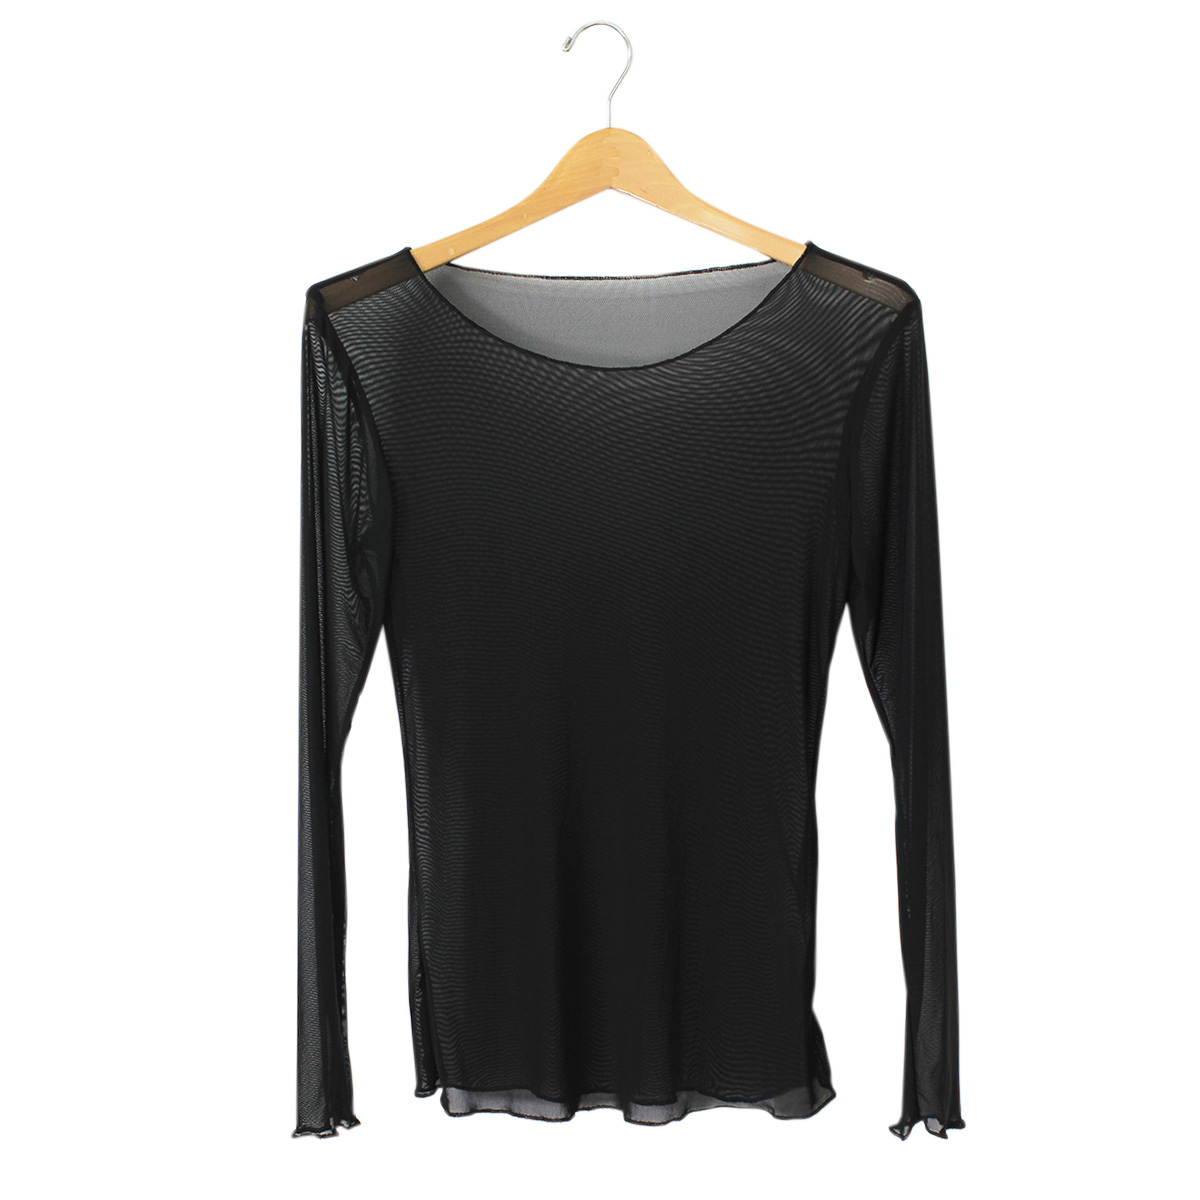 Long sleeve mesh top habits fashion boutique for Boutique tops